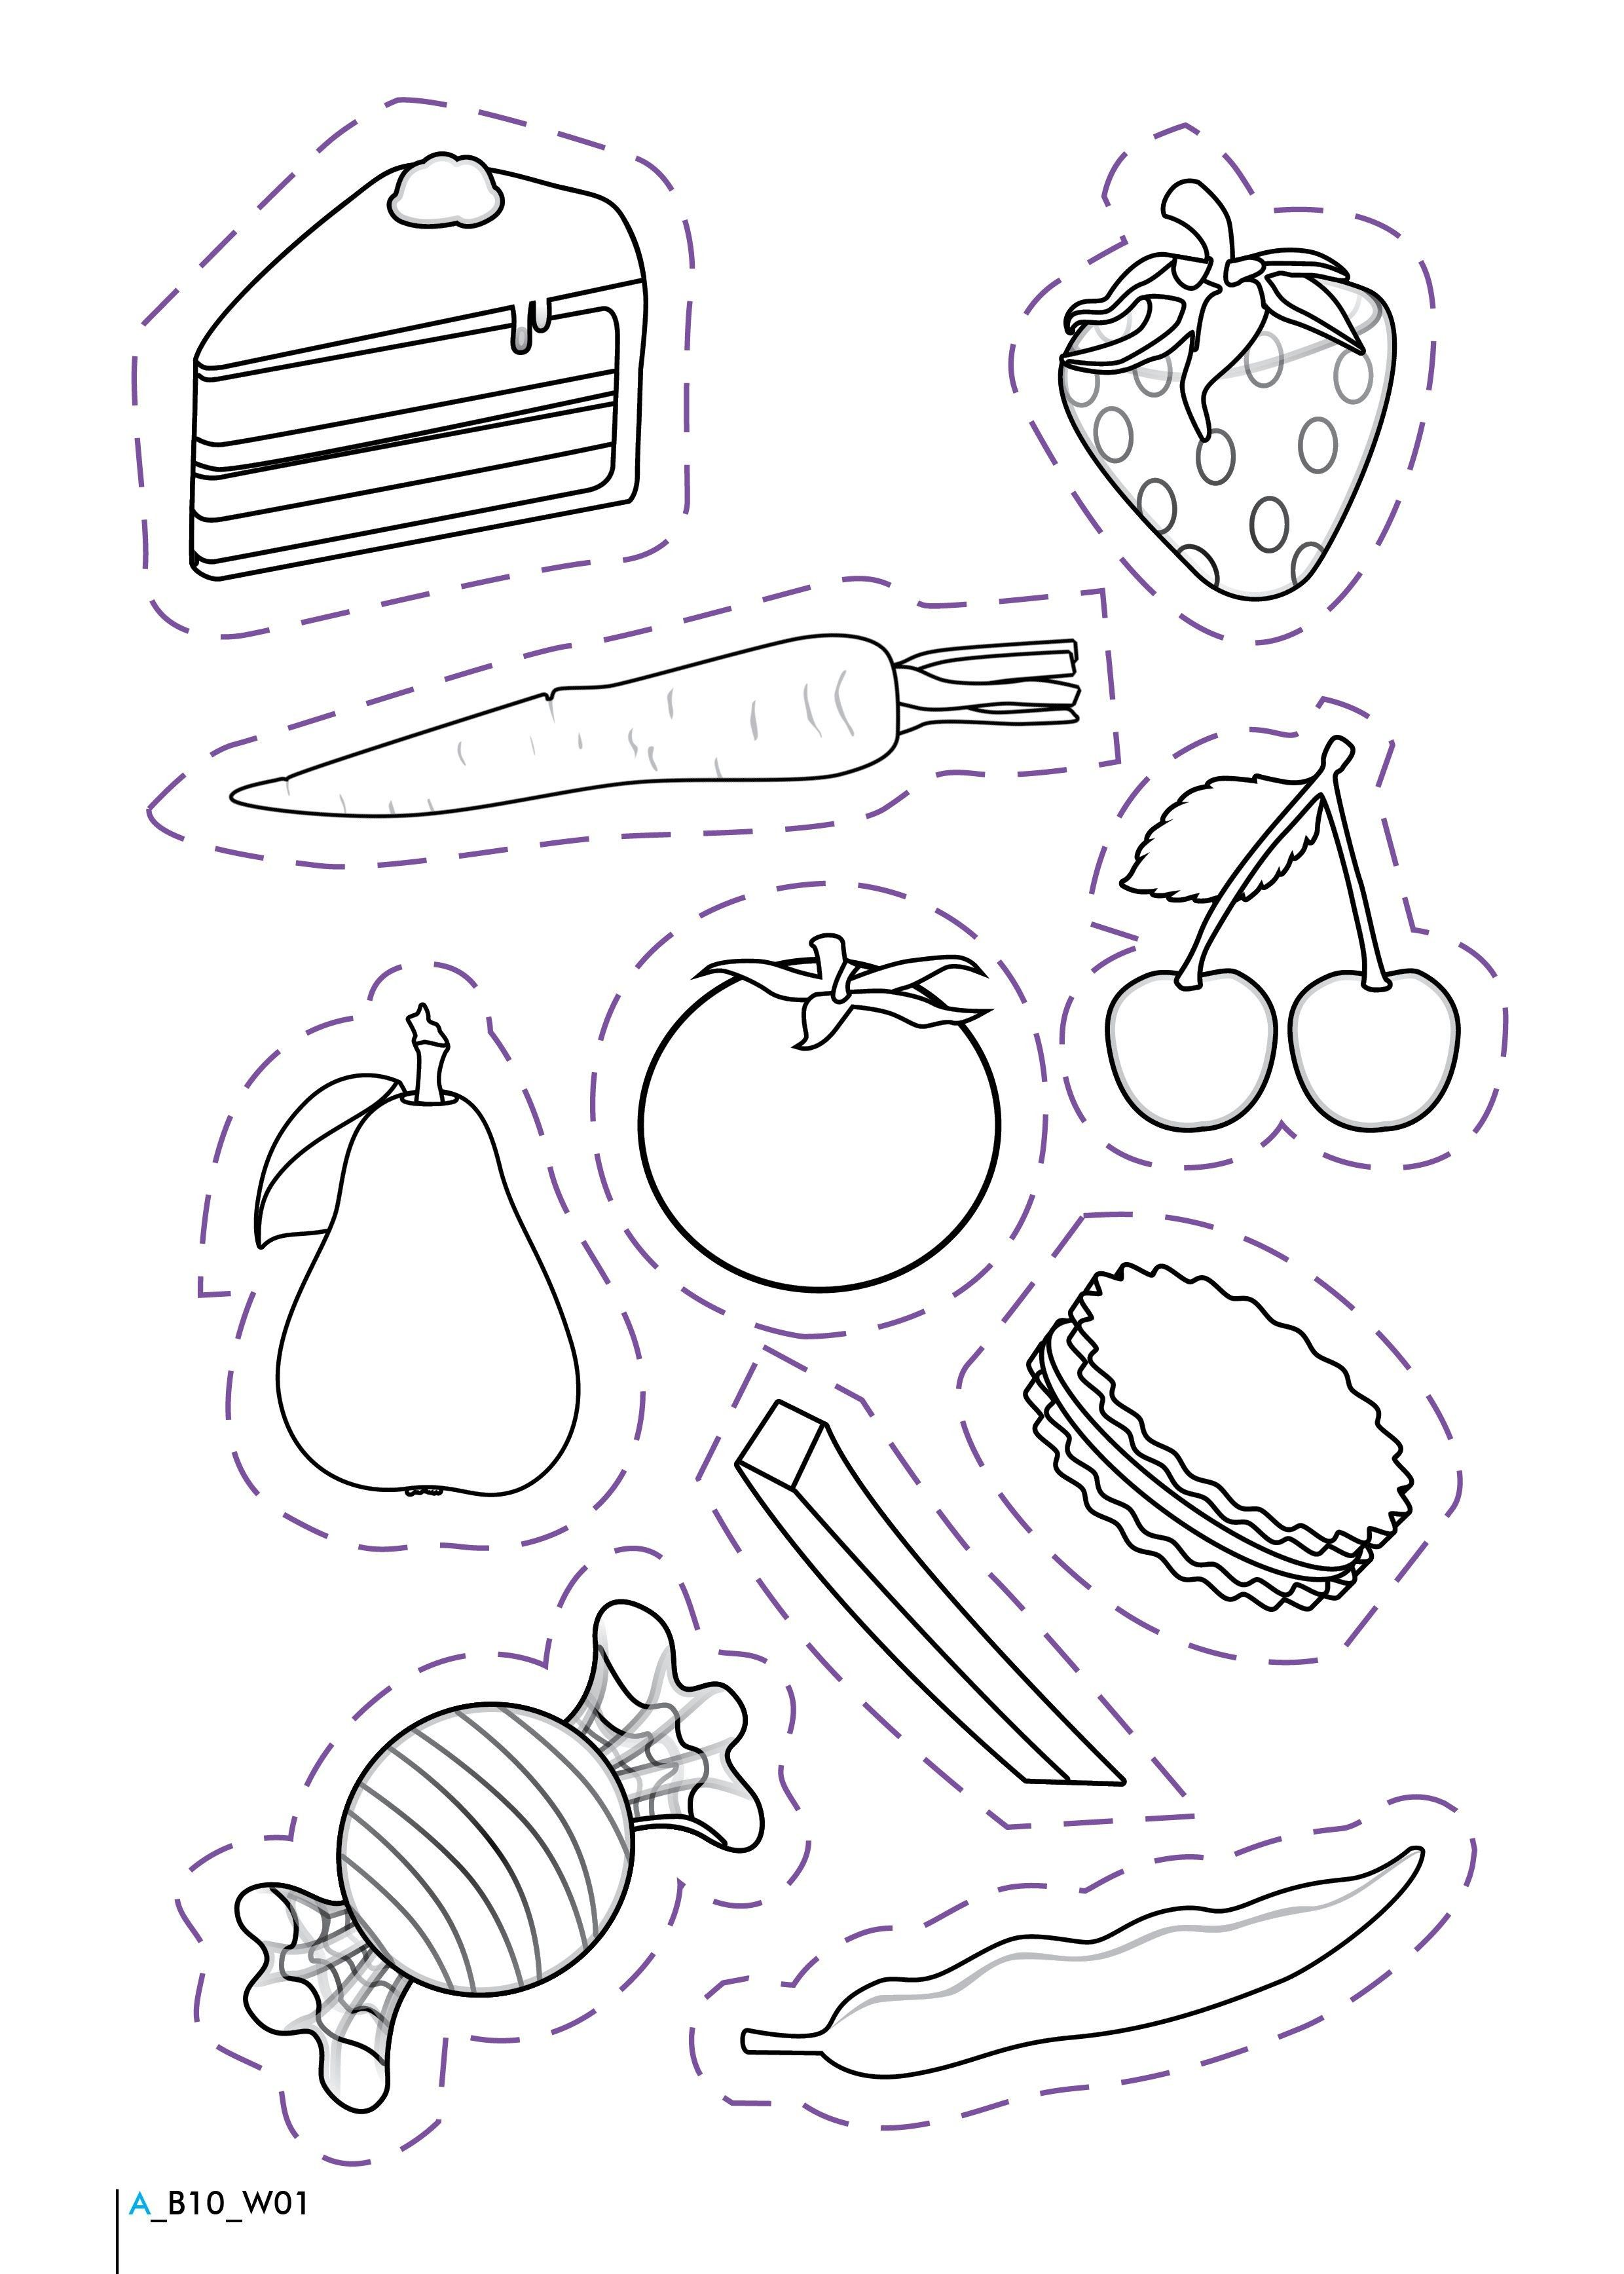 Healthy Vs Unhealthy Food Choices Worksheet Use It As A